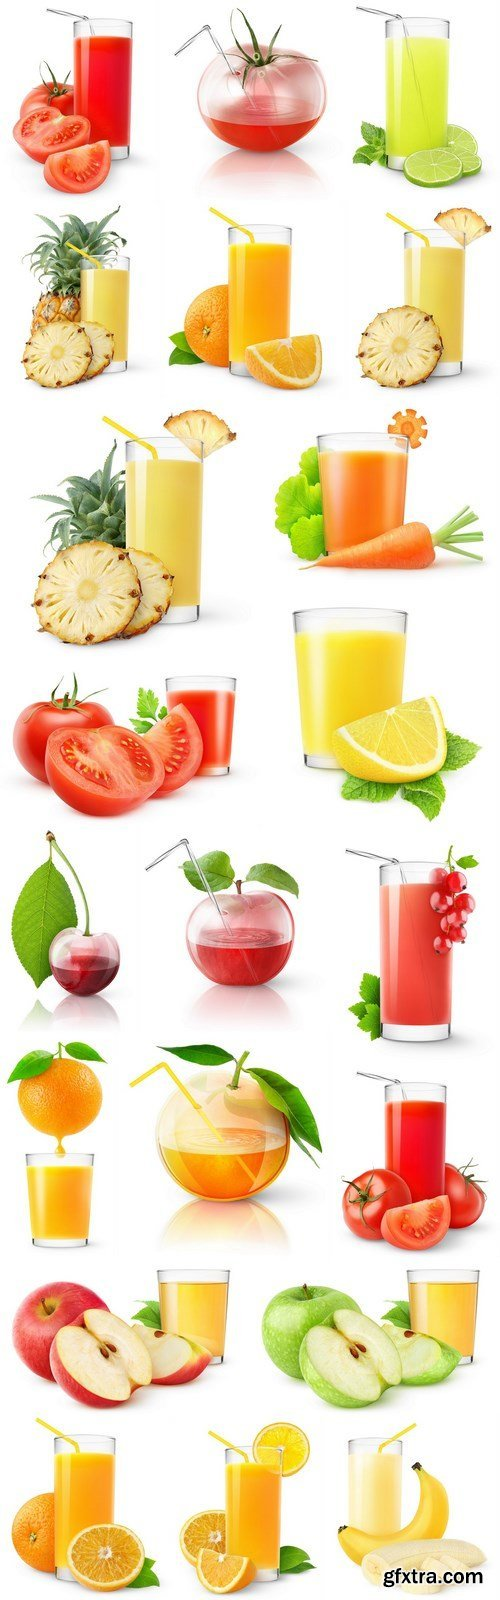 Fresh juice on a white background 2 - 21xUHQ JPEG Photo Stock